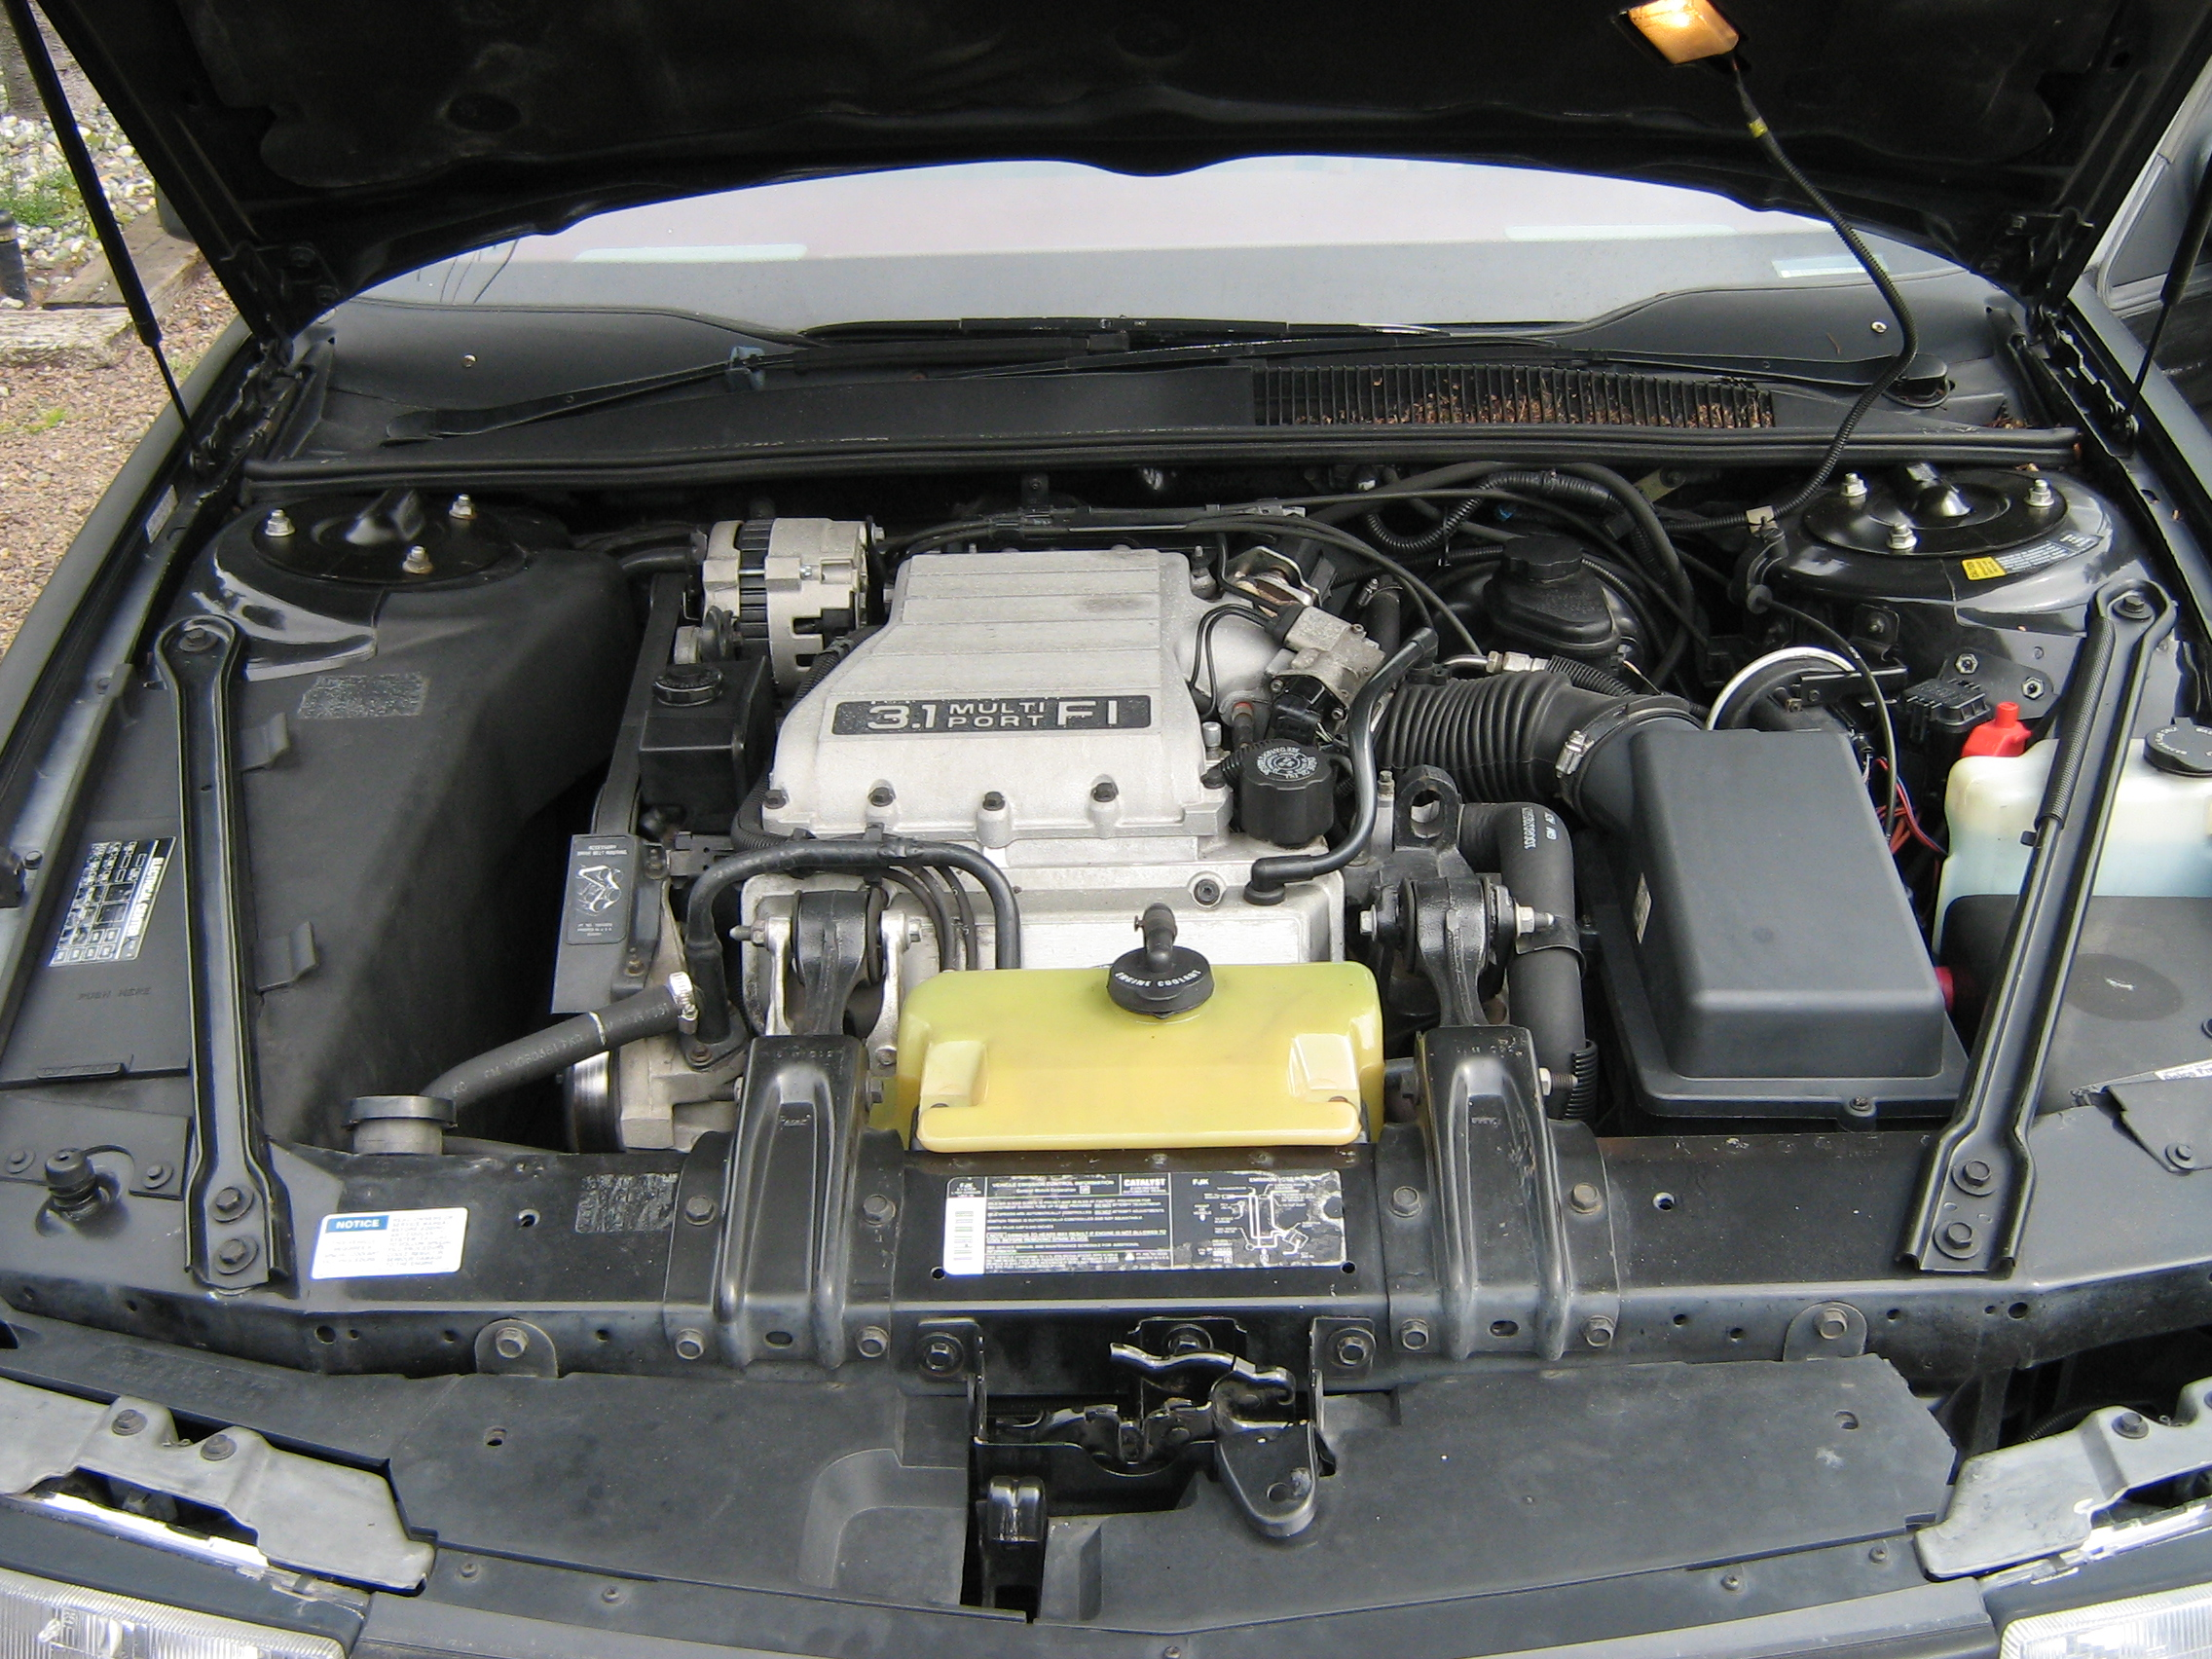 99 chevy lumina 3 1 engine diagram - instance wiring diagram  event.eventimusicaema.it